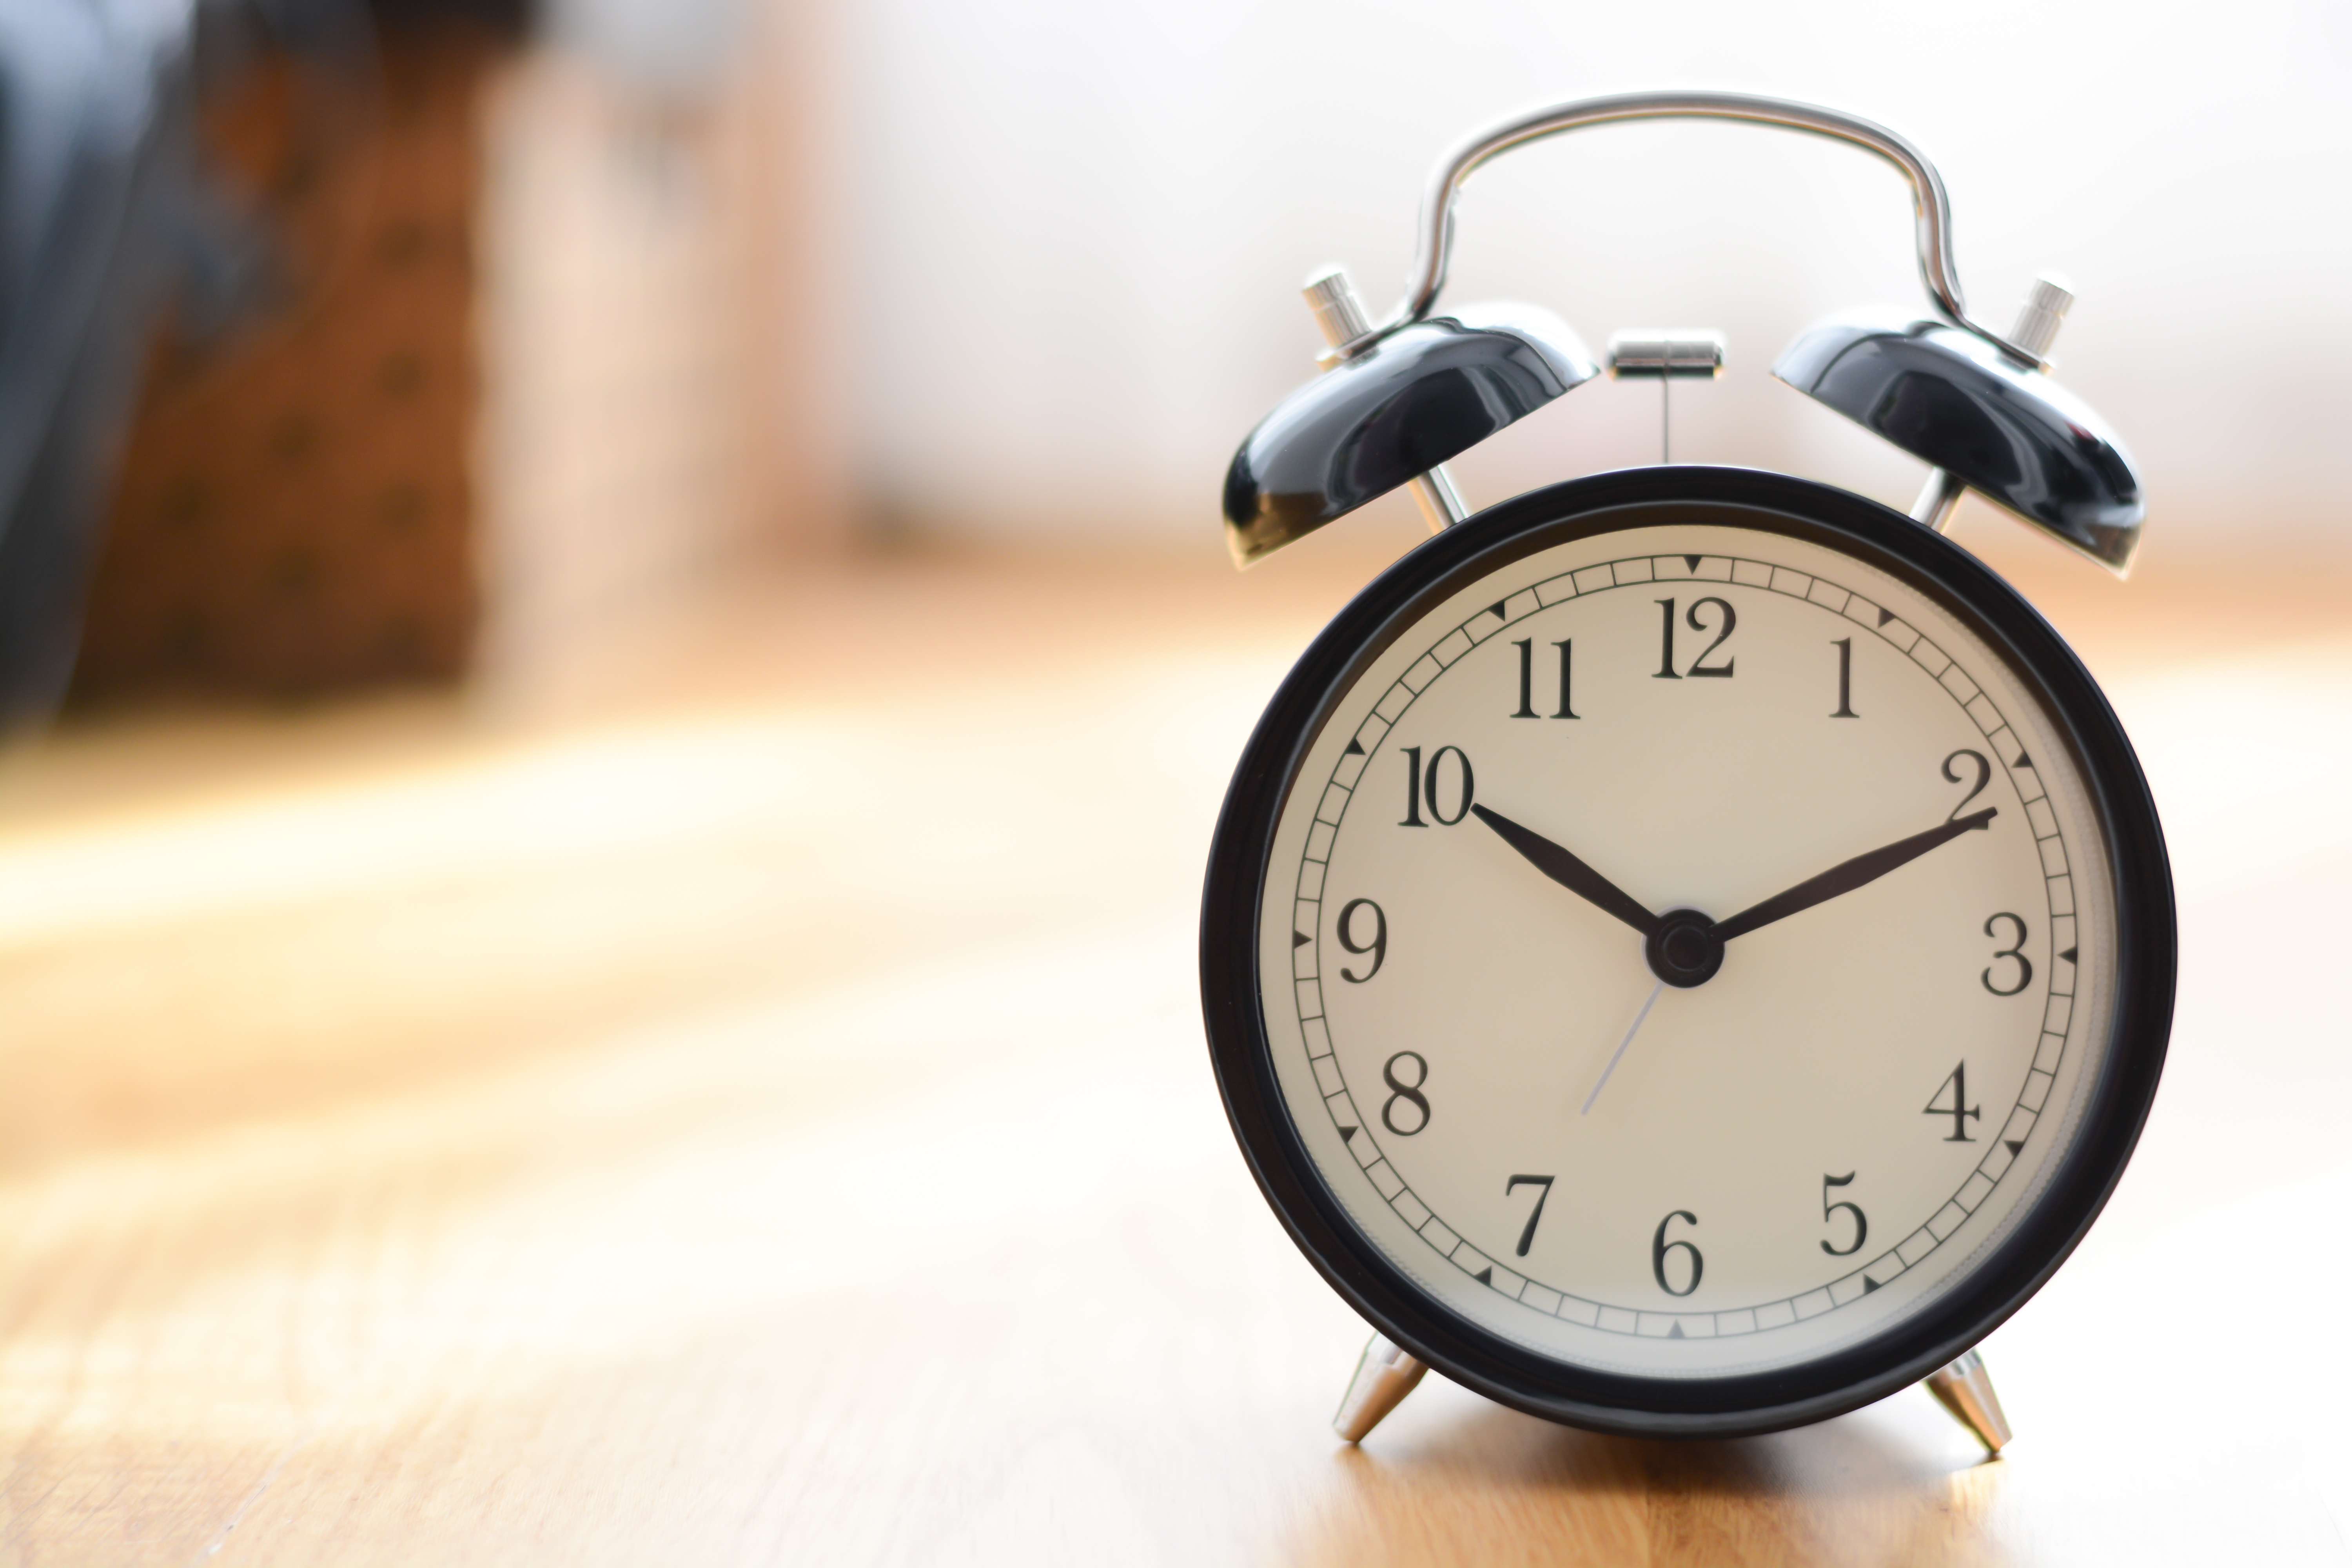 Tips to Help Improve Time Management